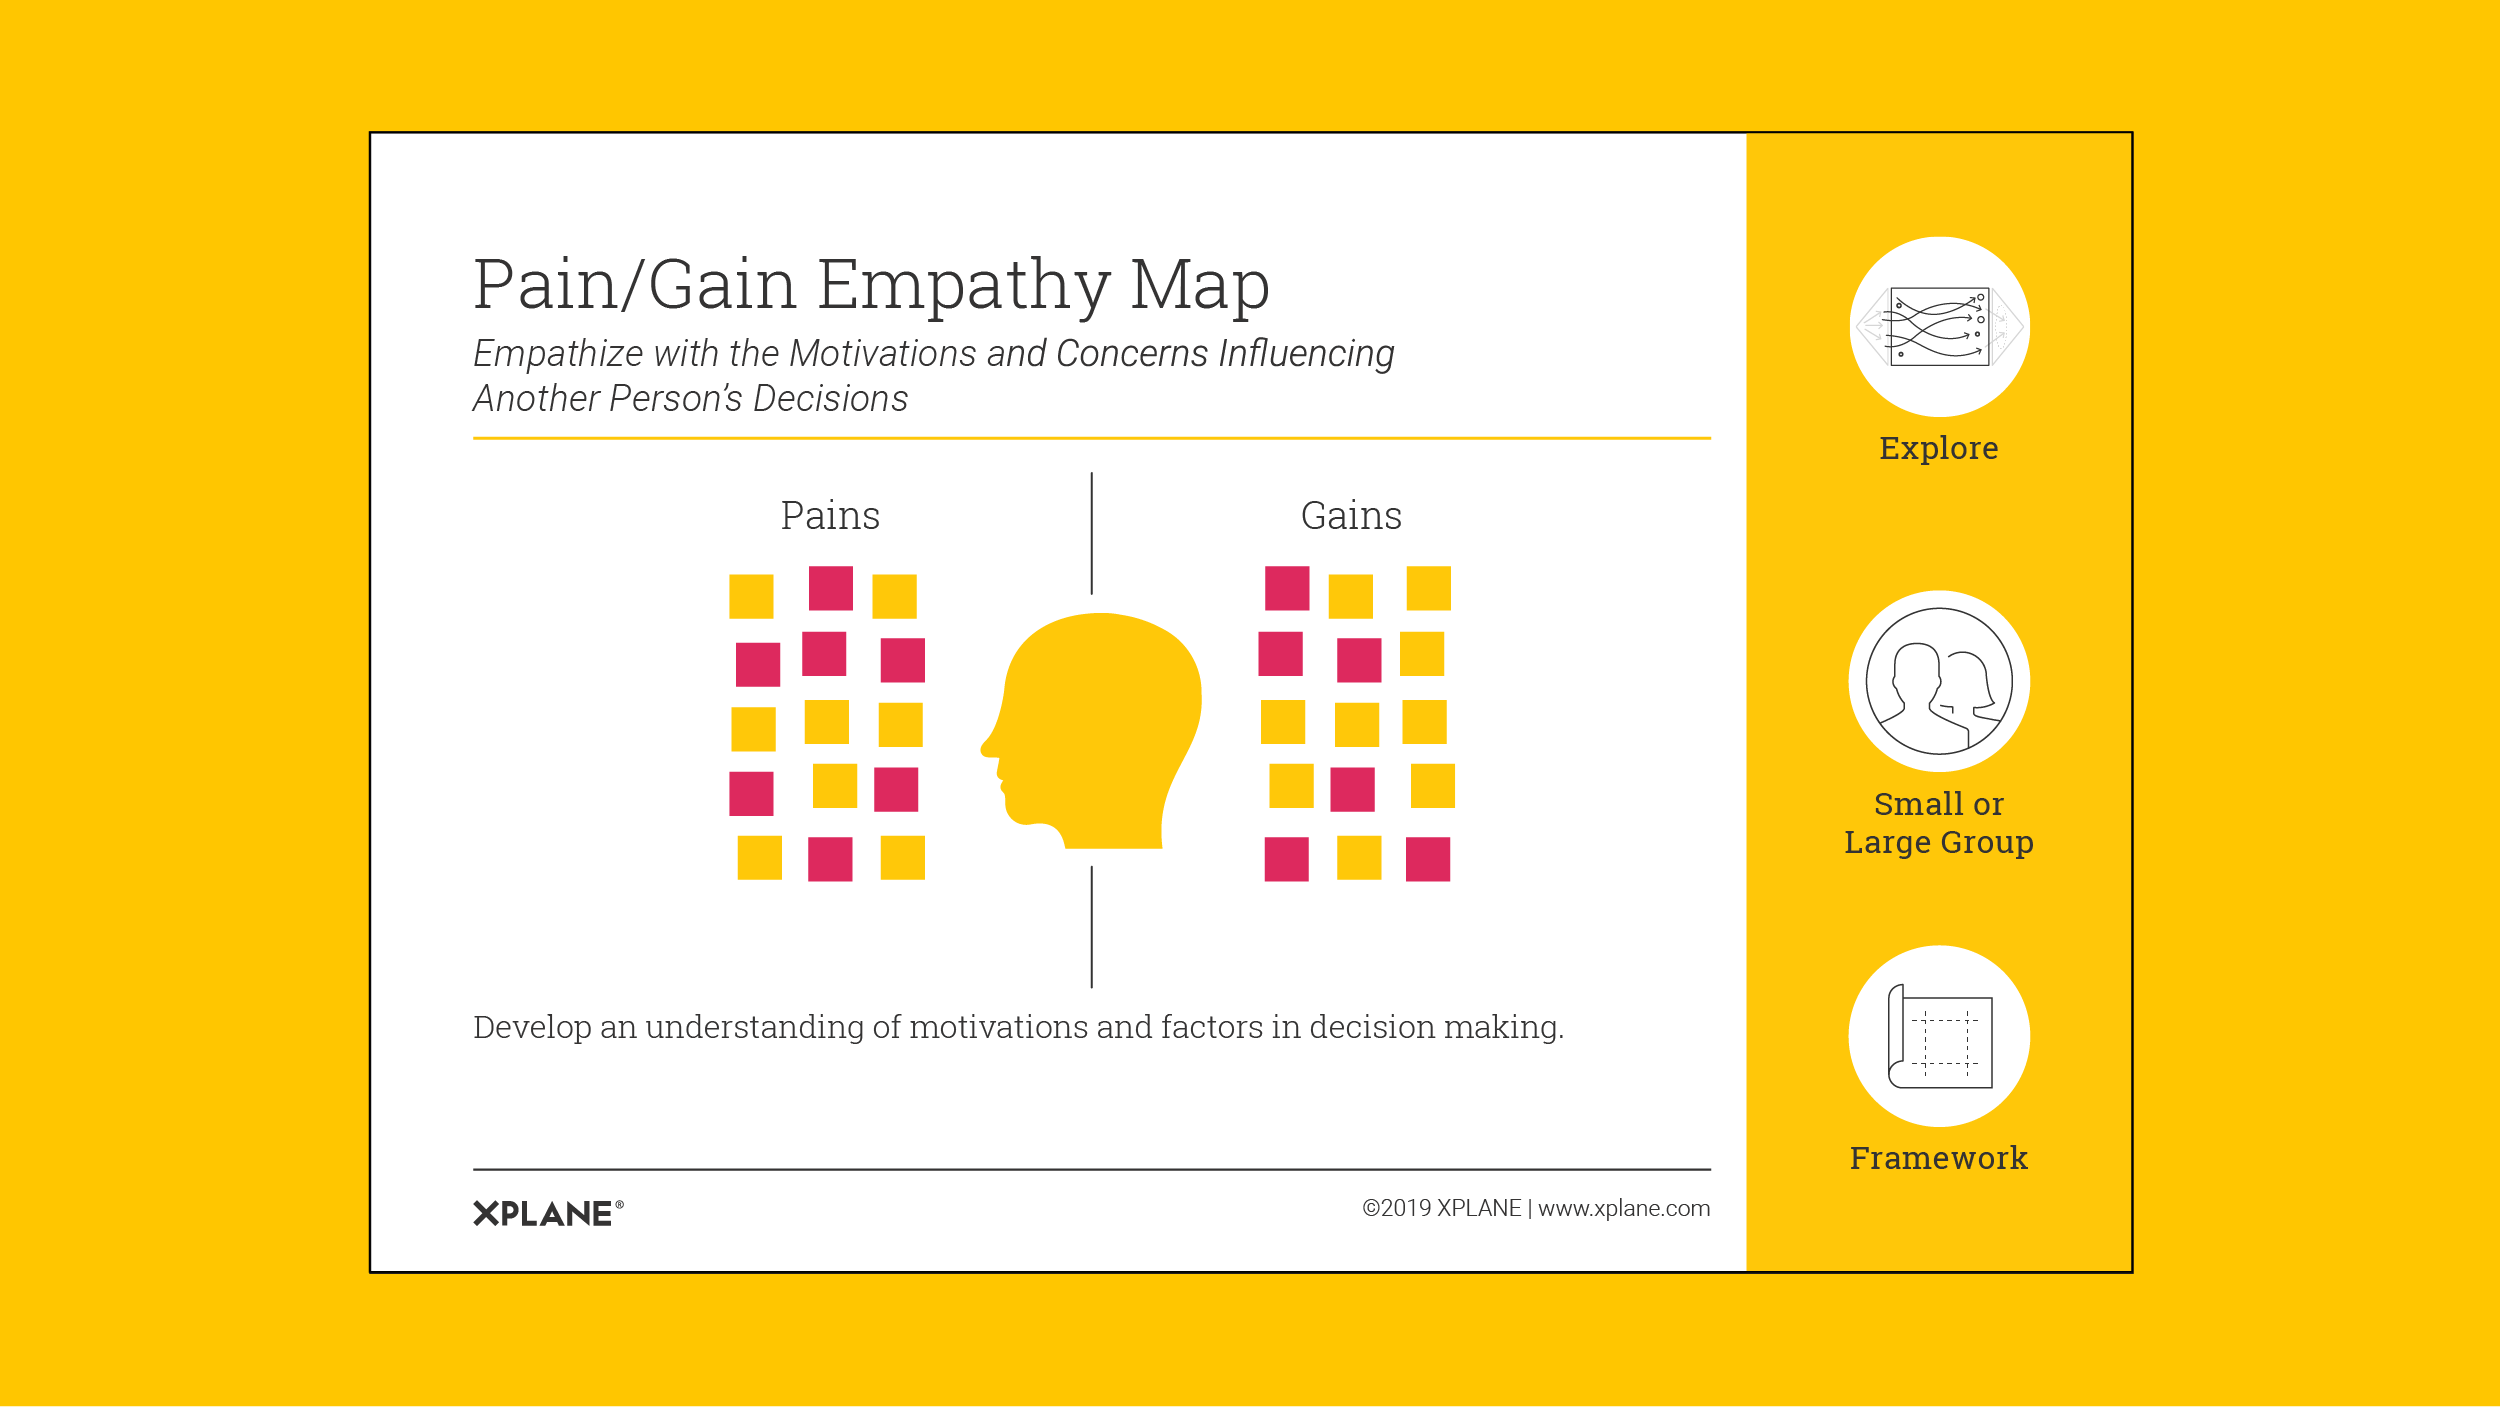 Pain Gain Empathy Map Image